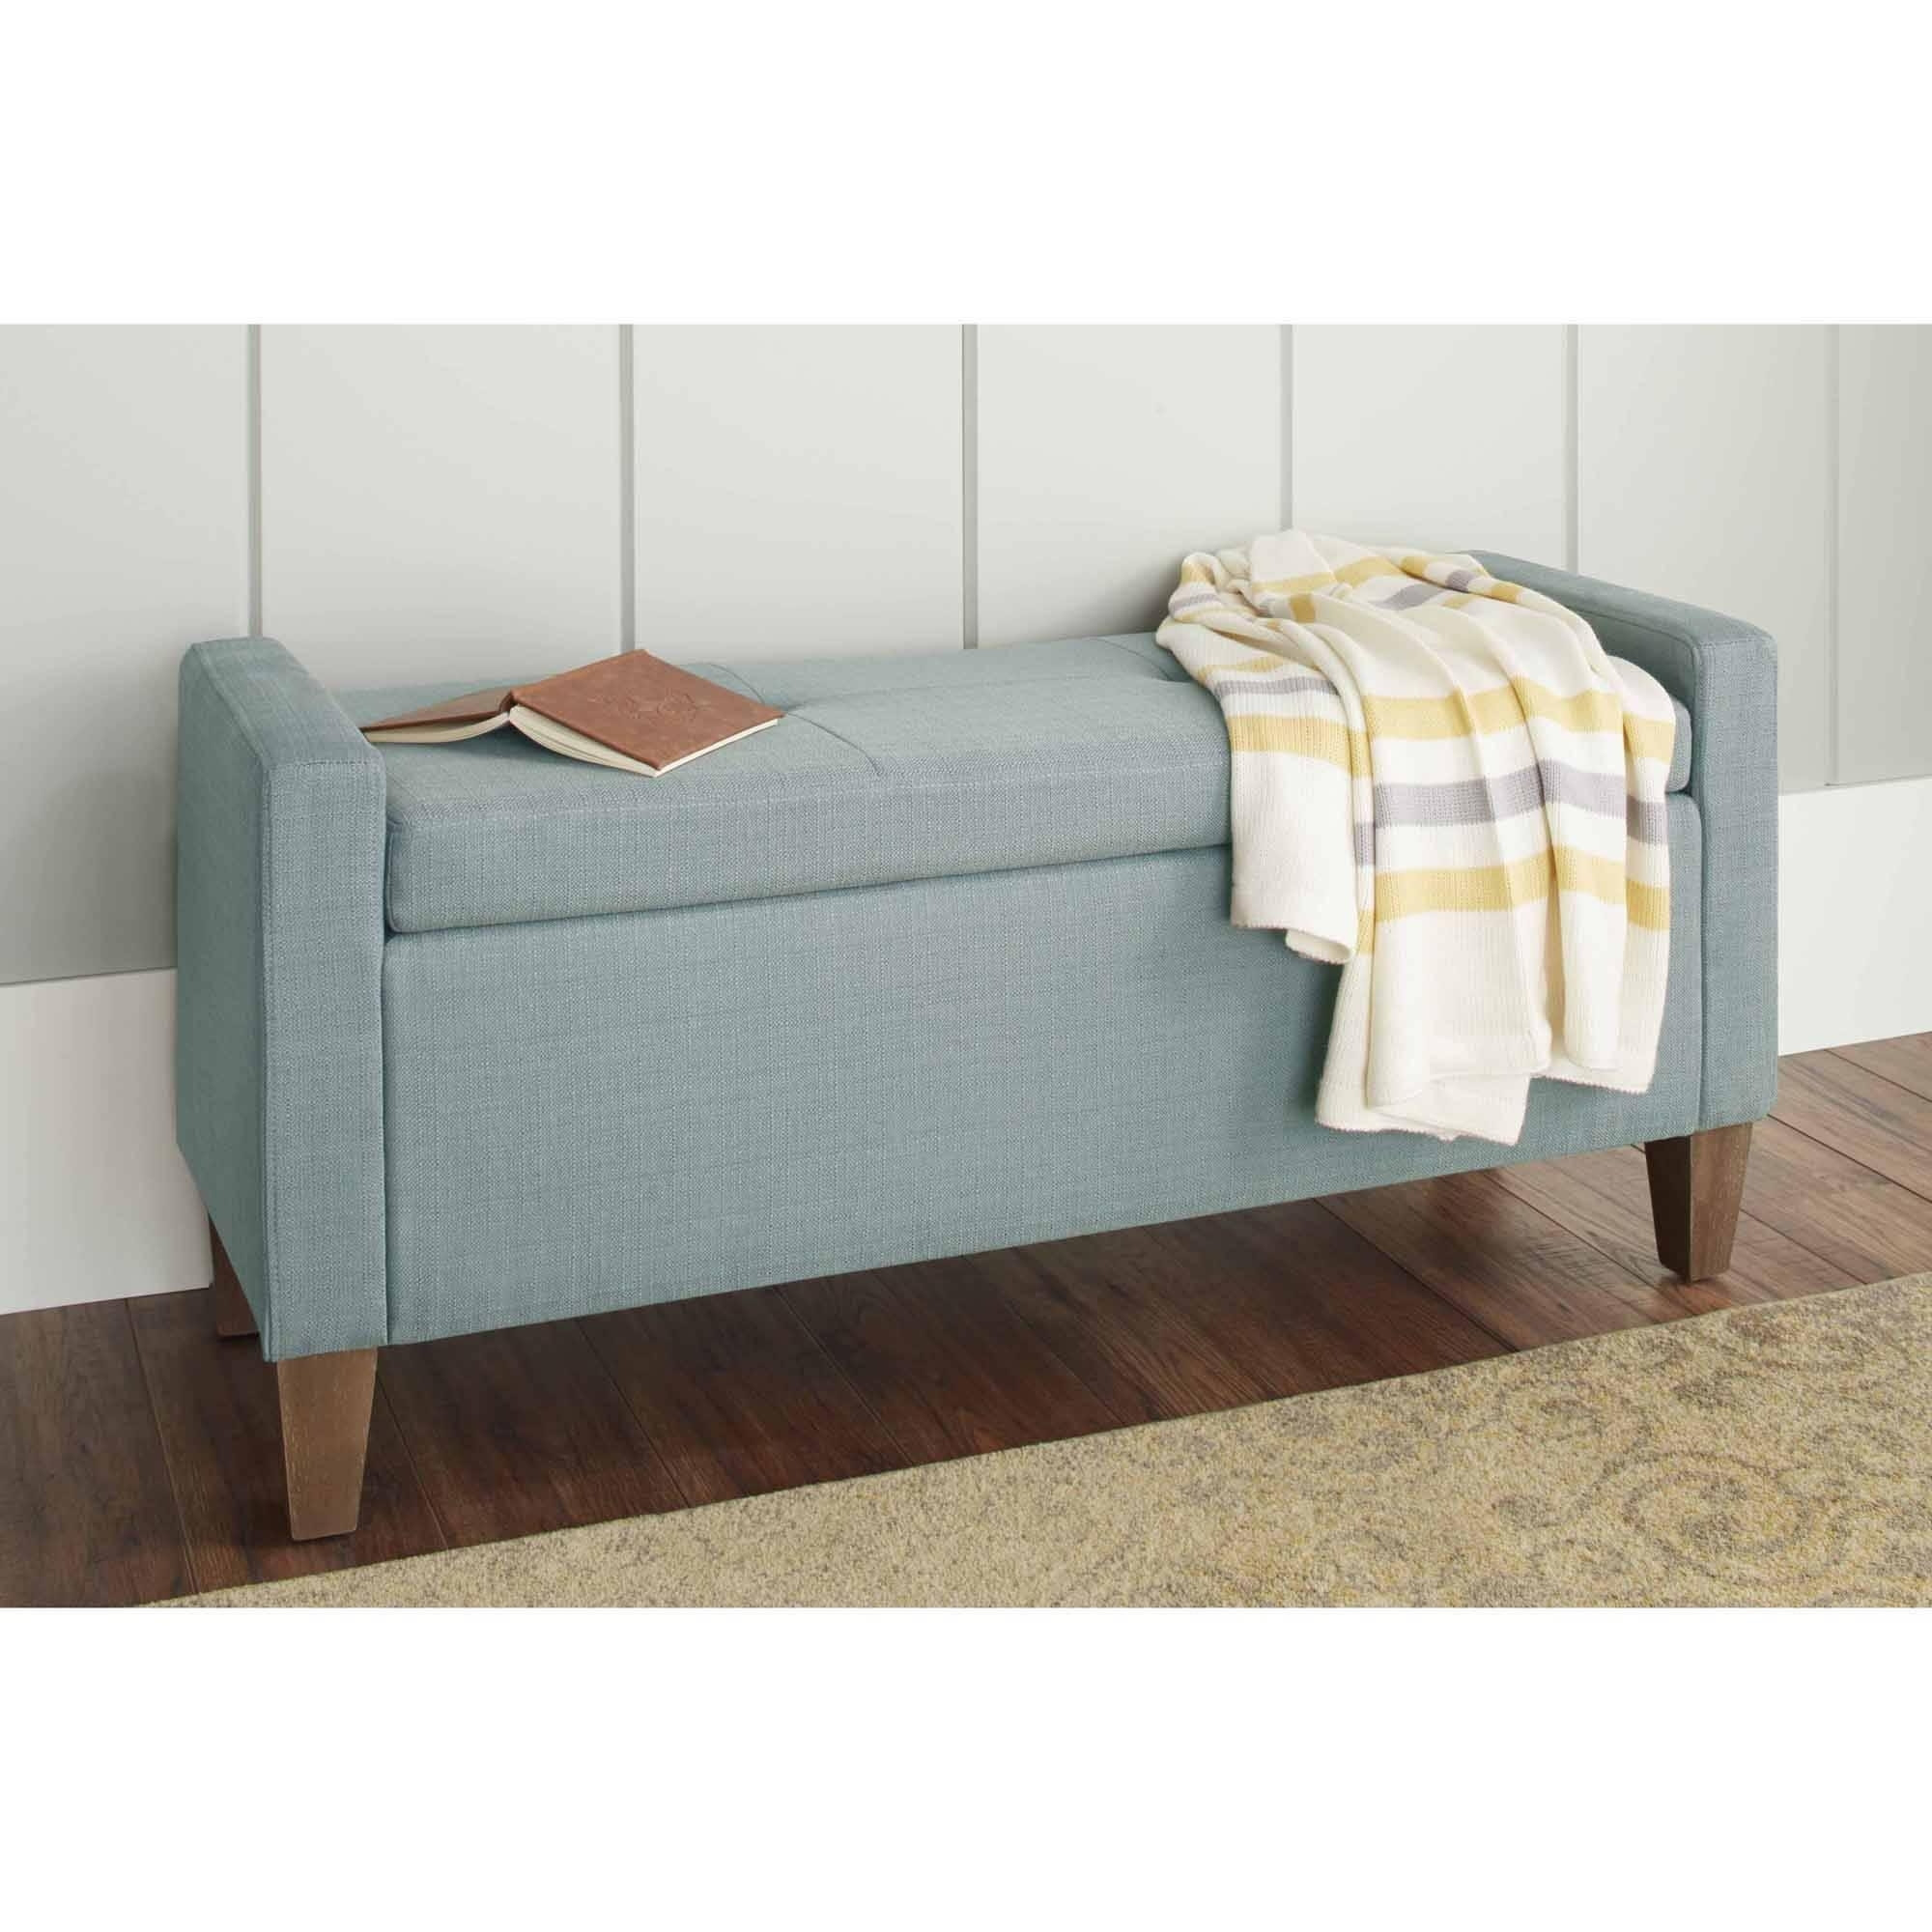 Bedroom Storage Ideas Bench Plans Seat Units Benches For ...